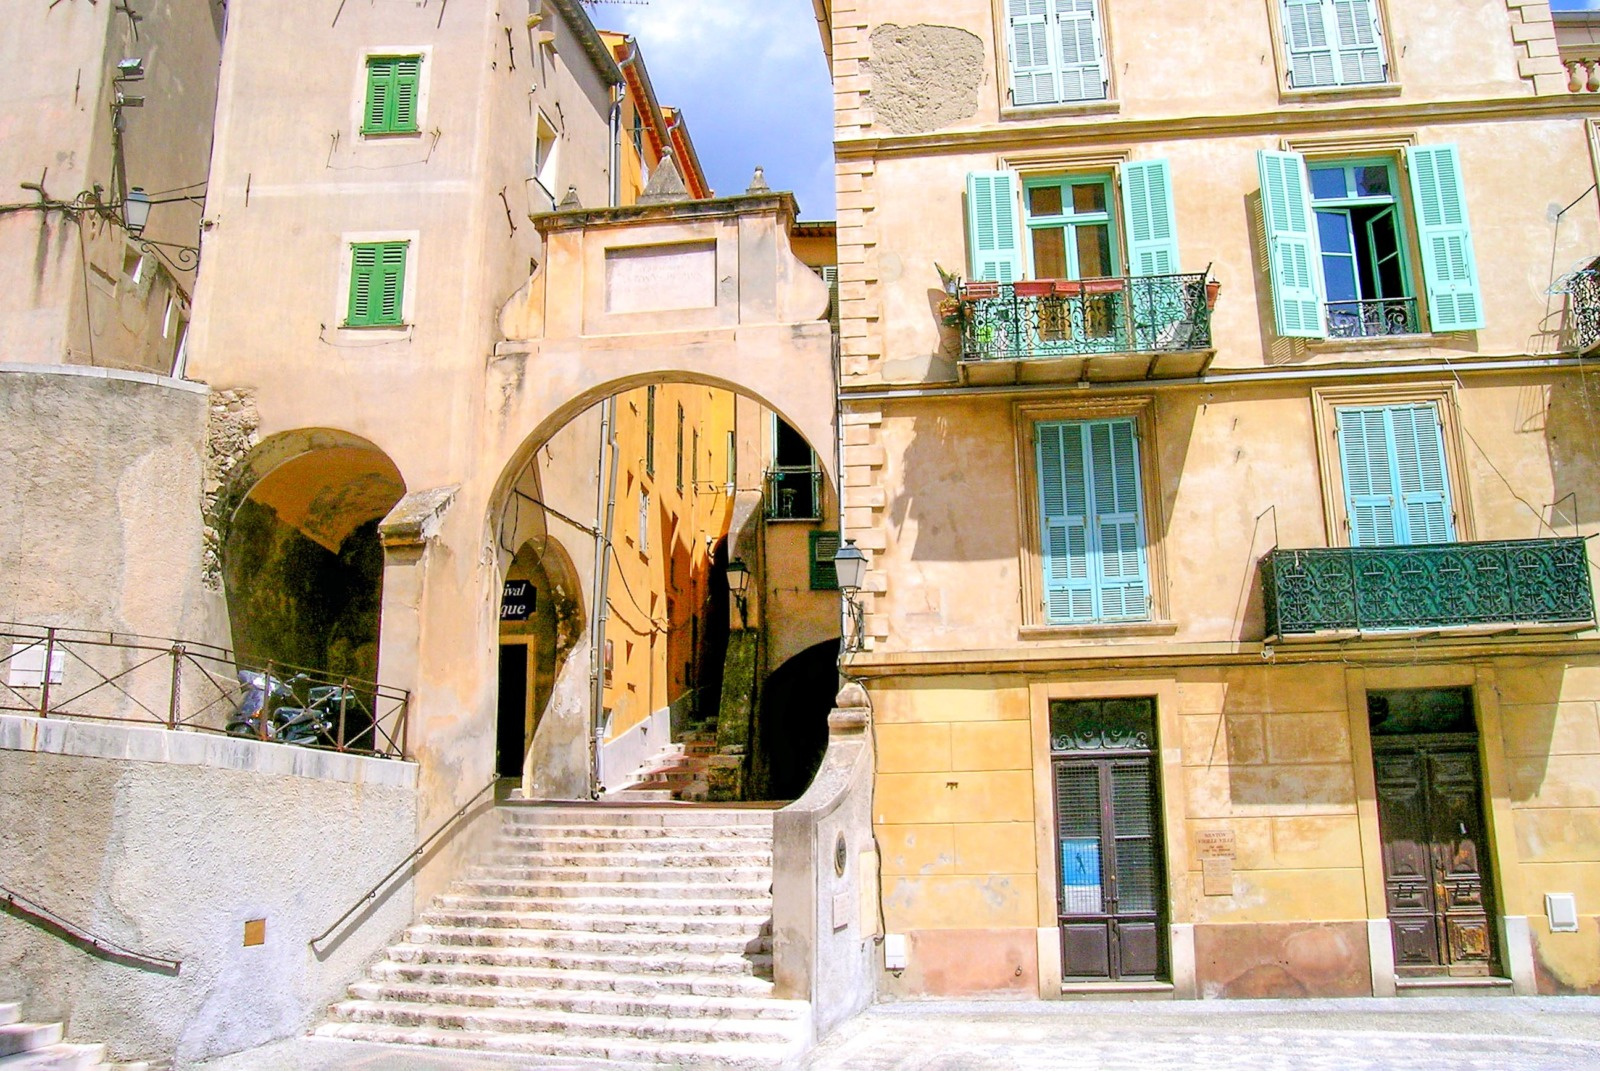 The entrance to the old town of Menton © Luca Galli - licence [CC BY 2.0] from Wikimedia Commons